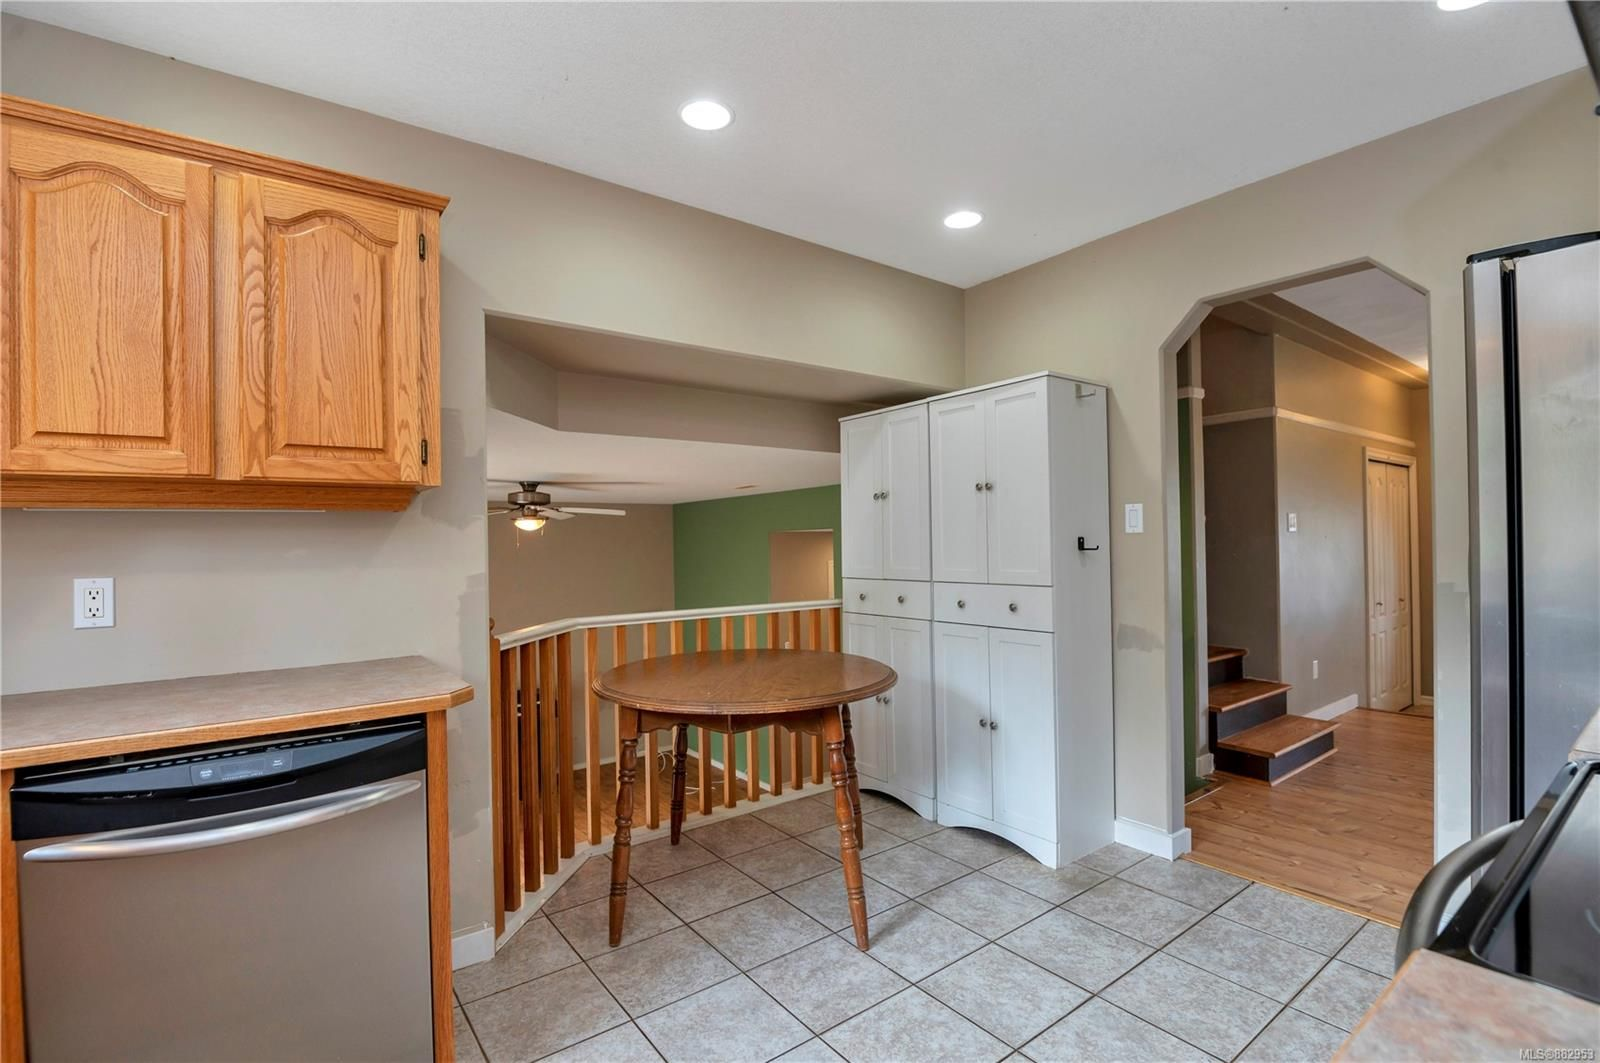 Photo 7: Photos: 732 Oribi Dr in : CR Campbell River Central House for sale (Campbell River)  : MLS®# 882953